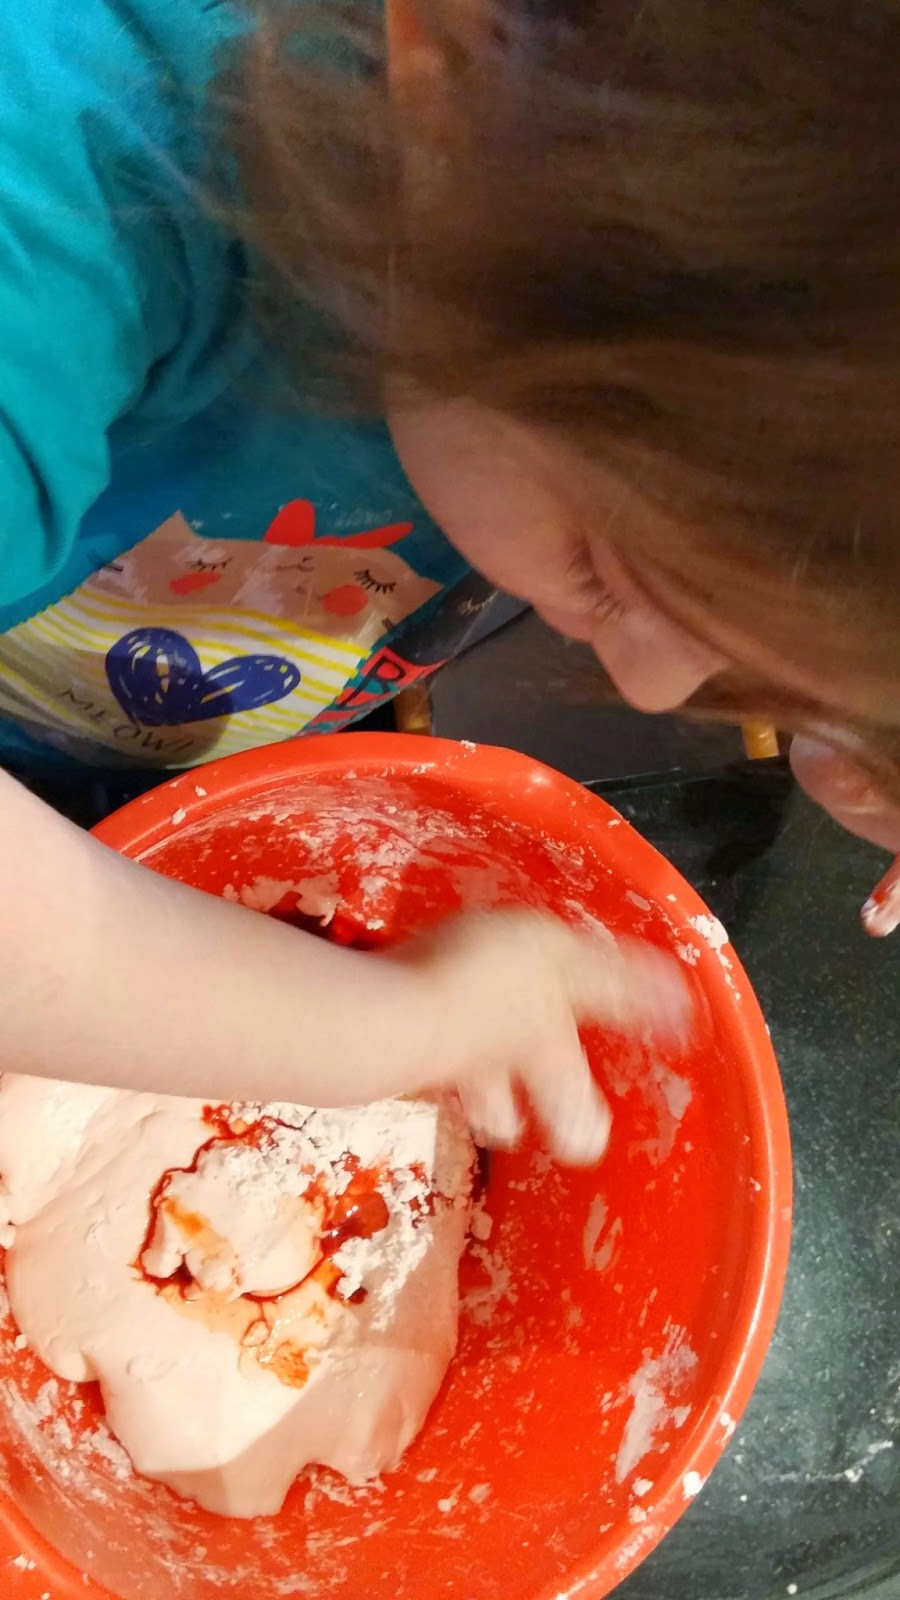 eldest with messy play